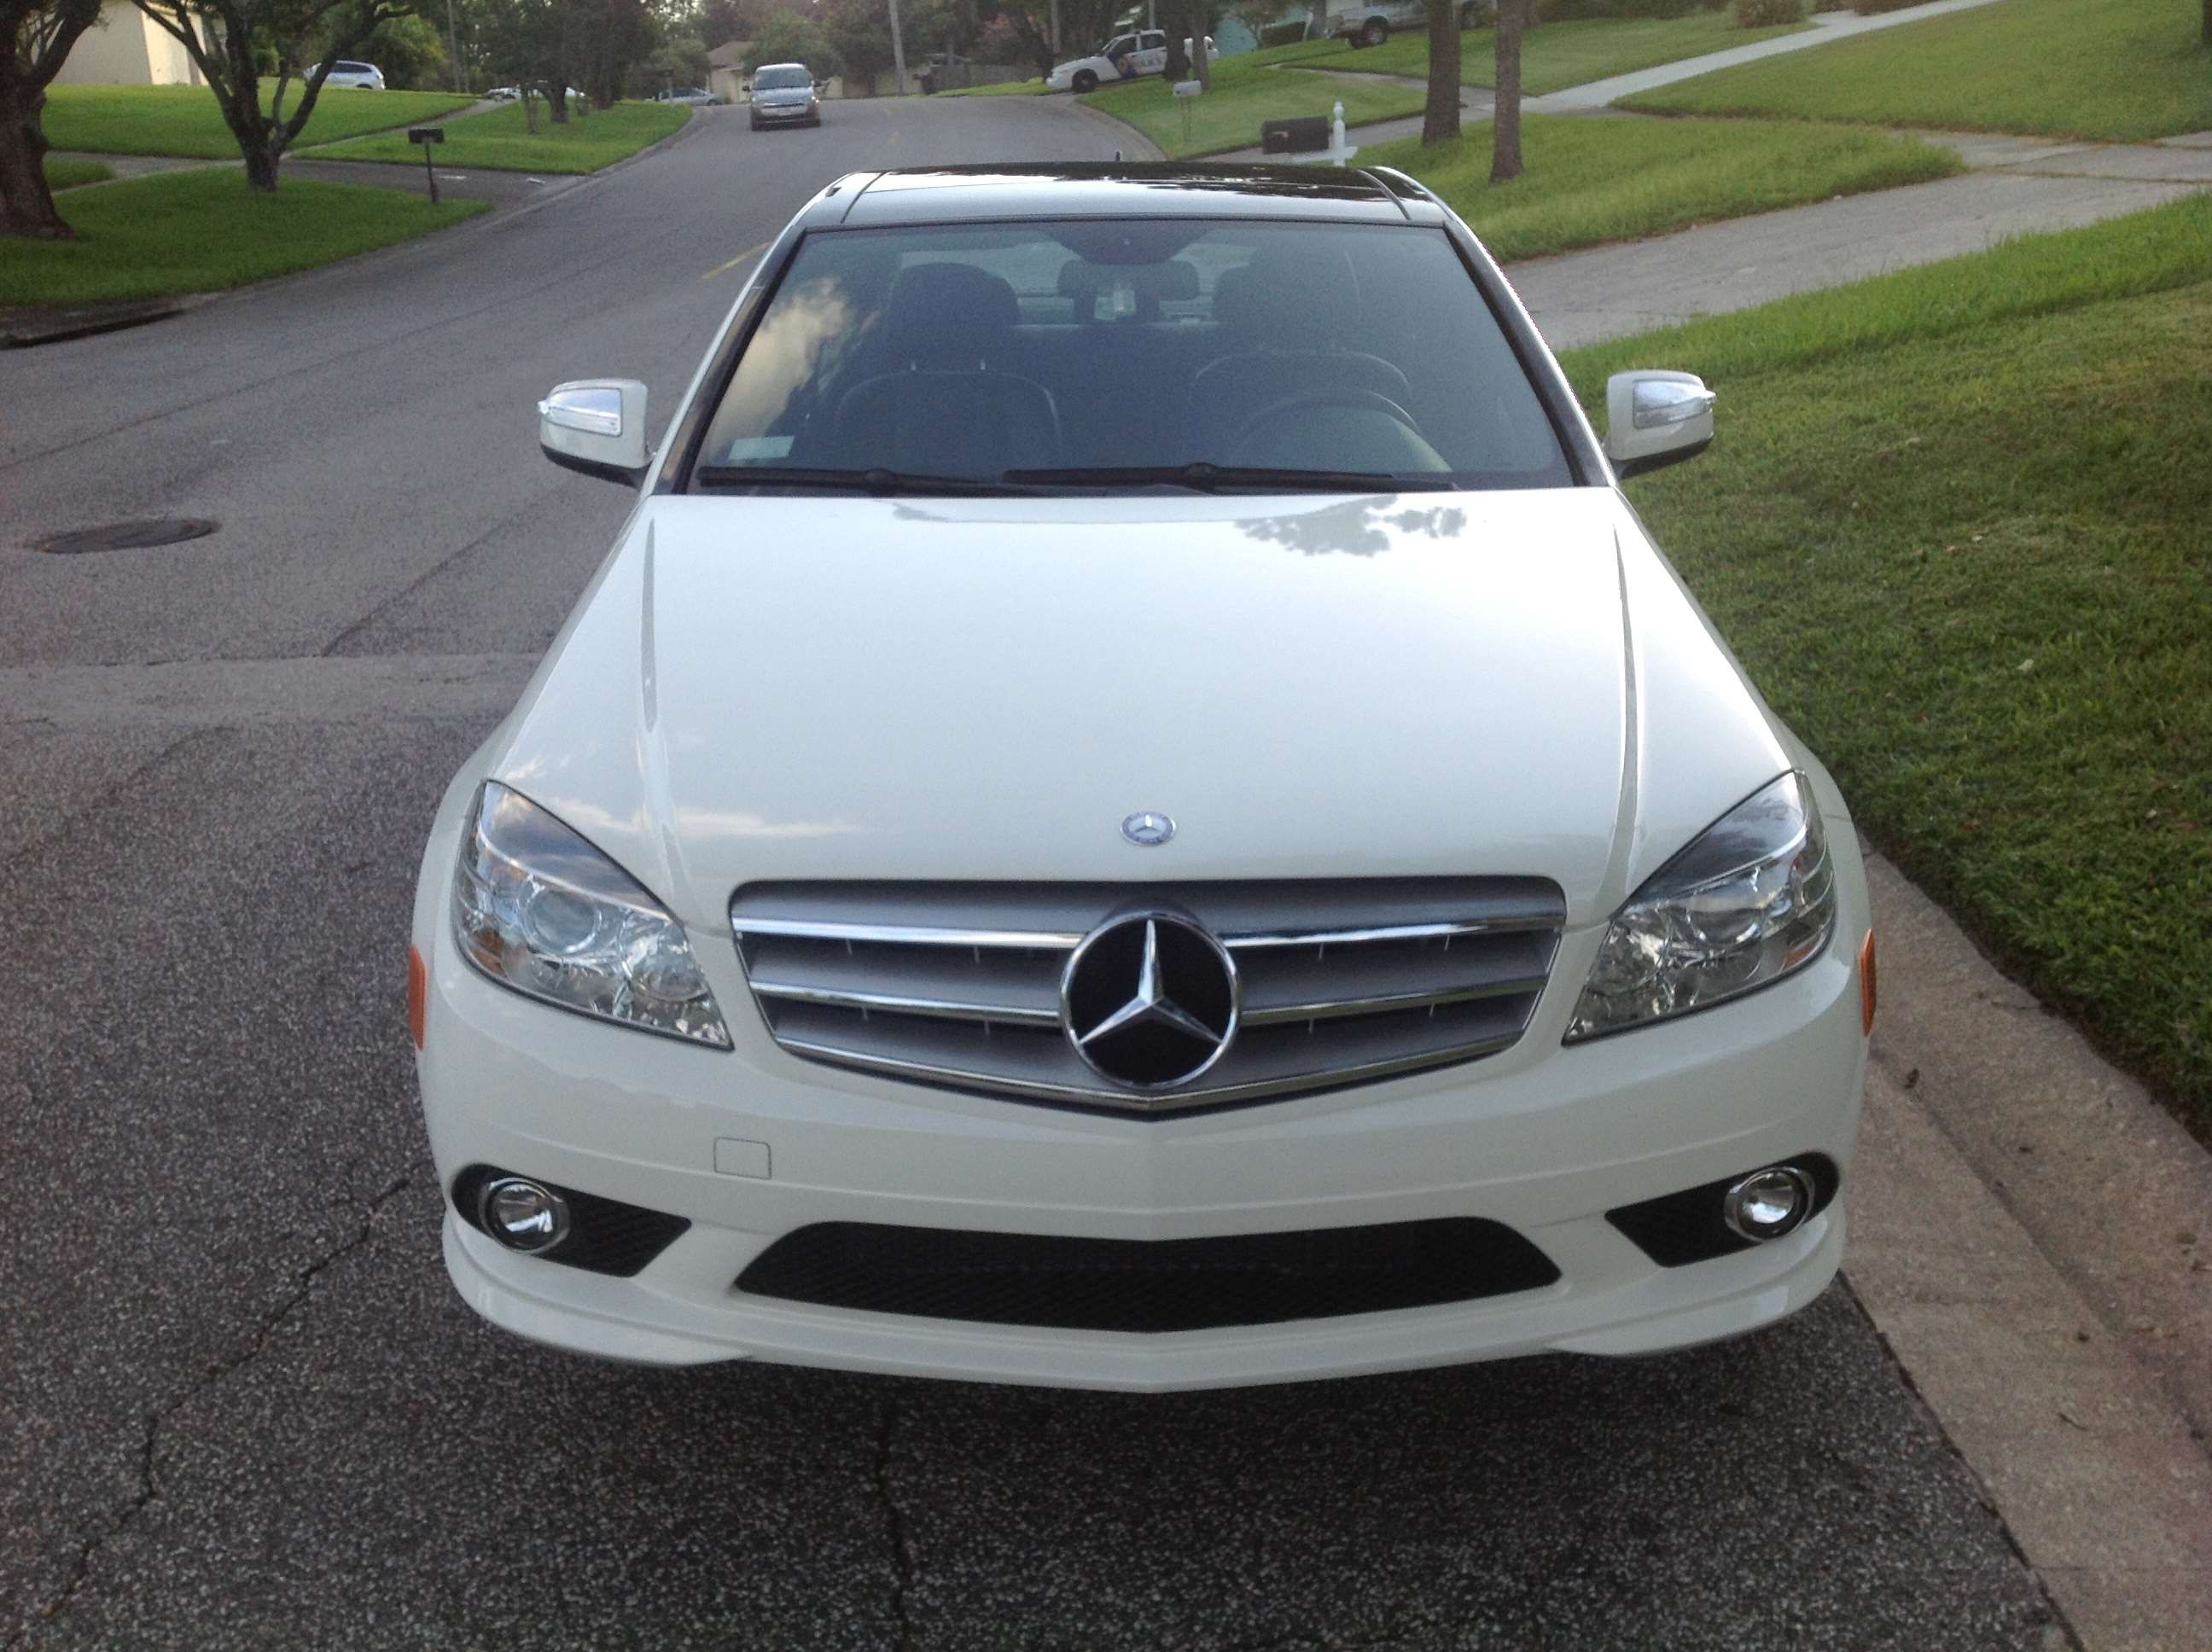 hight resolution of make mercedes benz model c300 year 2008 body style luxury cars